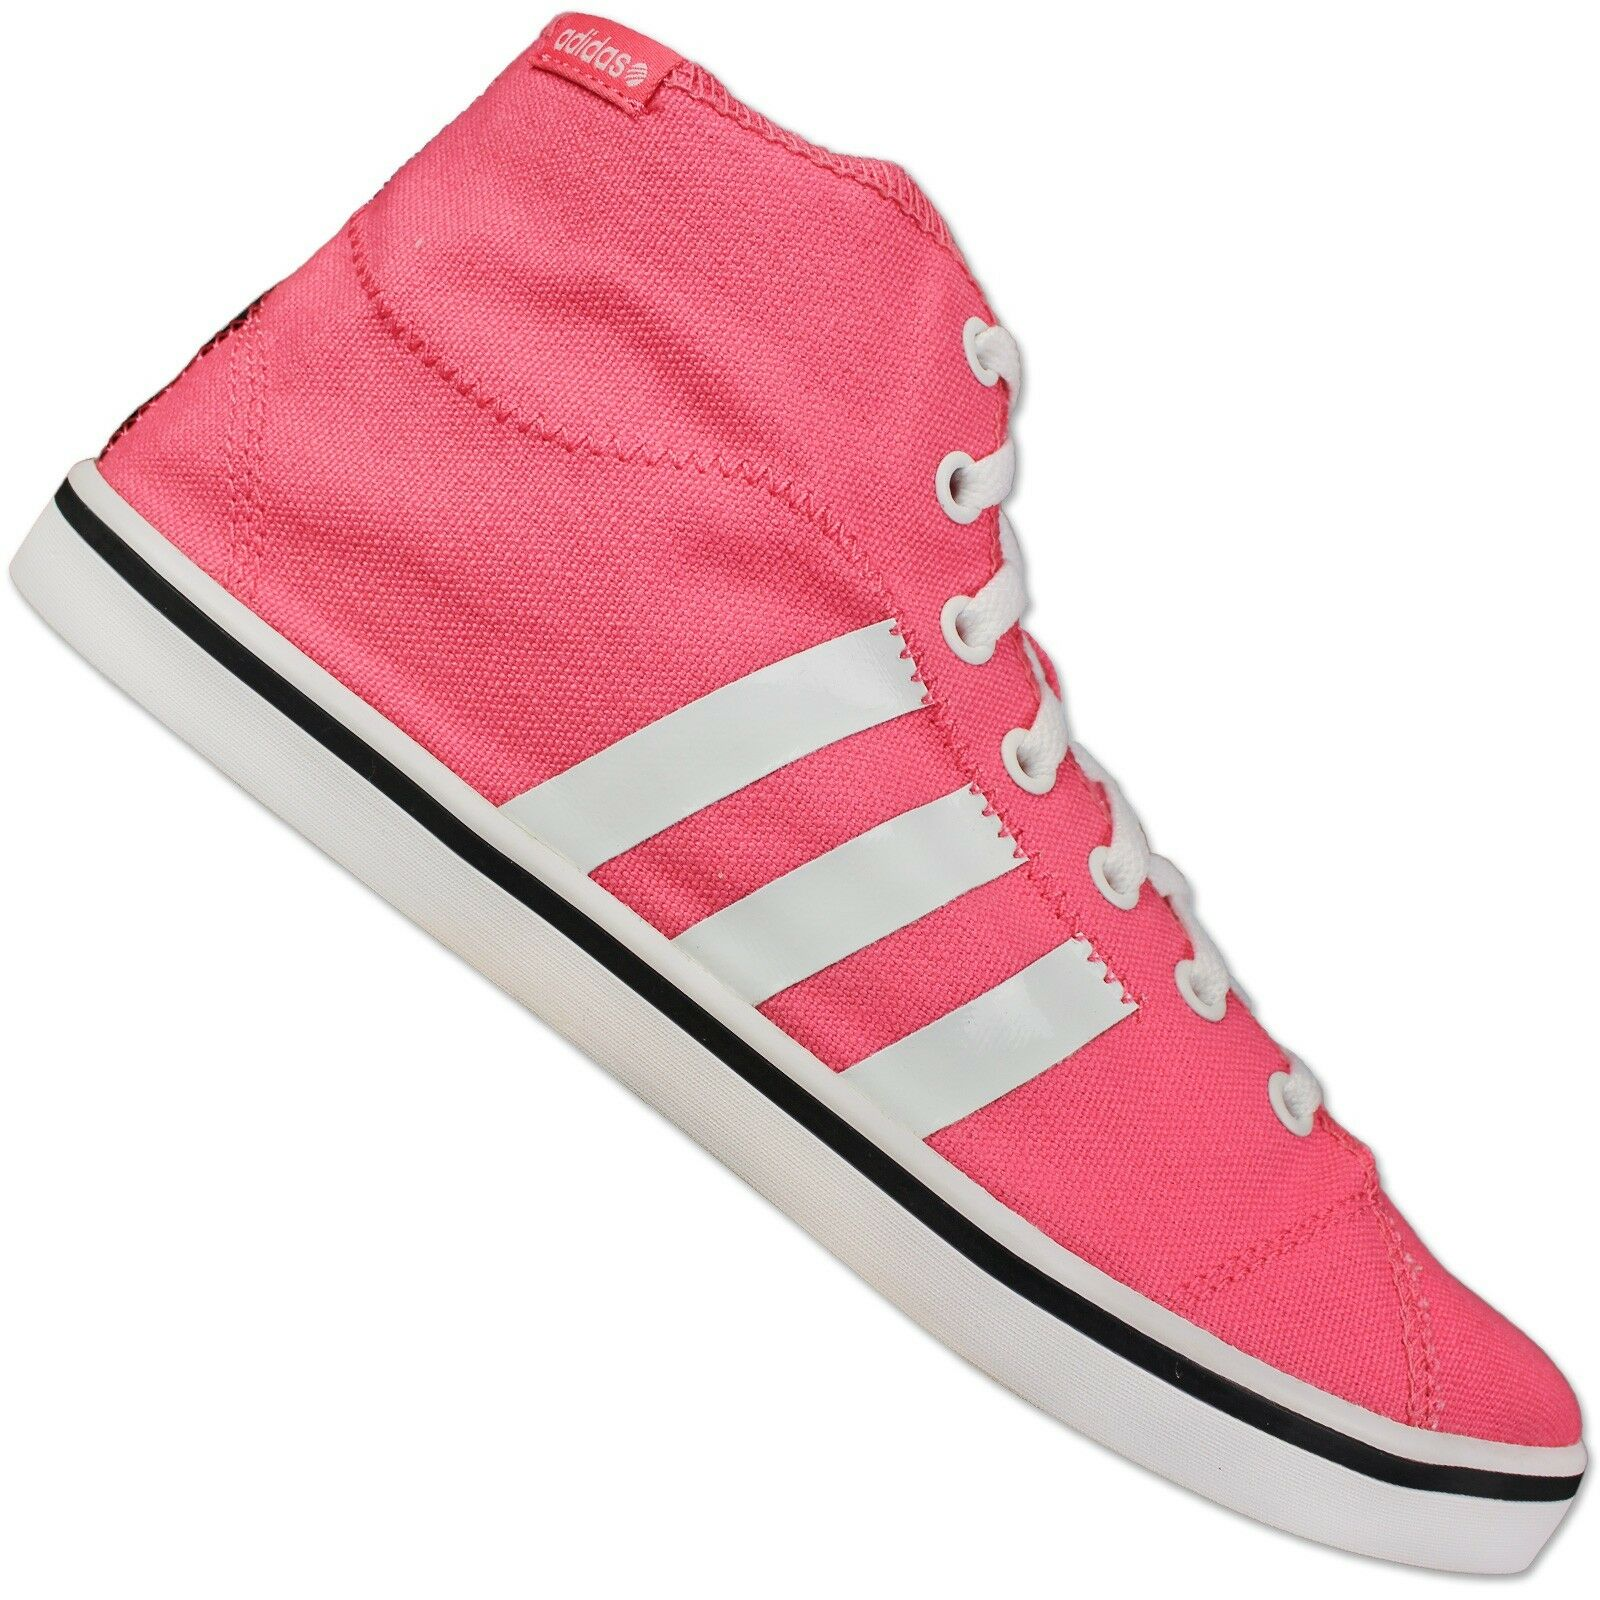 Adidas Neo Canvas Vlneo Bball Womens Mid Top Sneaker Pink Summer shoes Pink 38